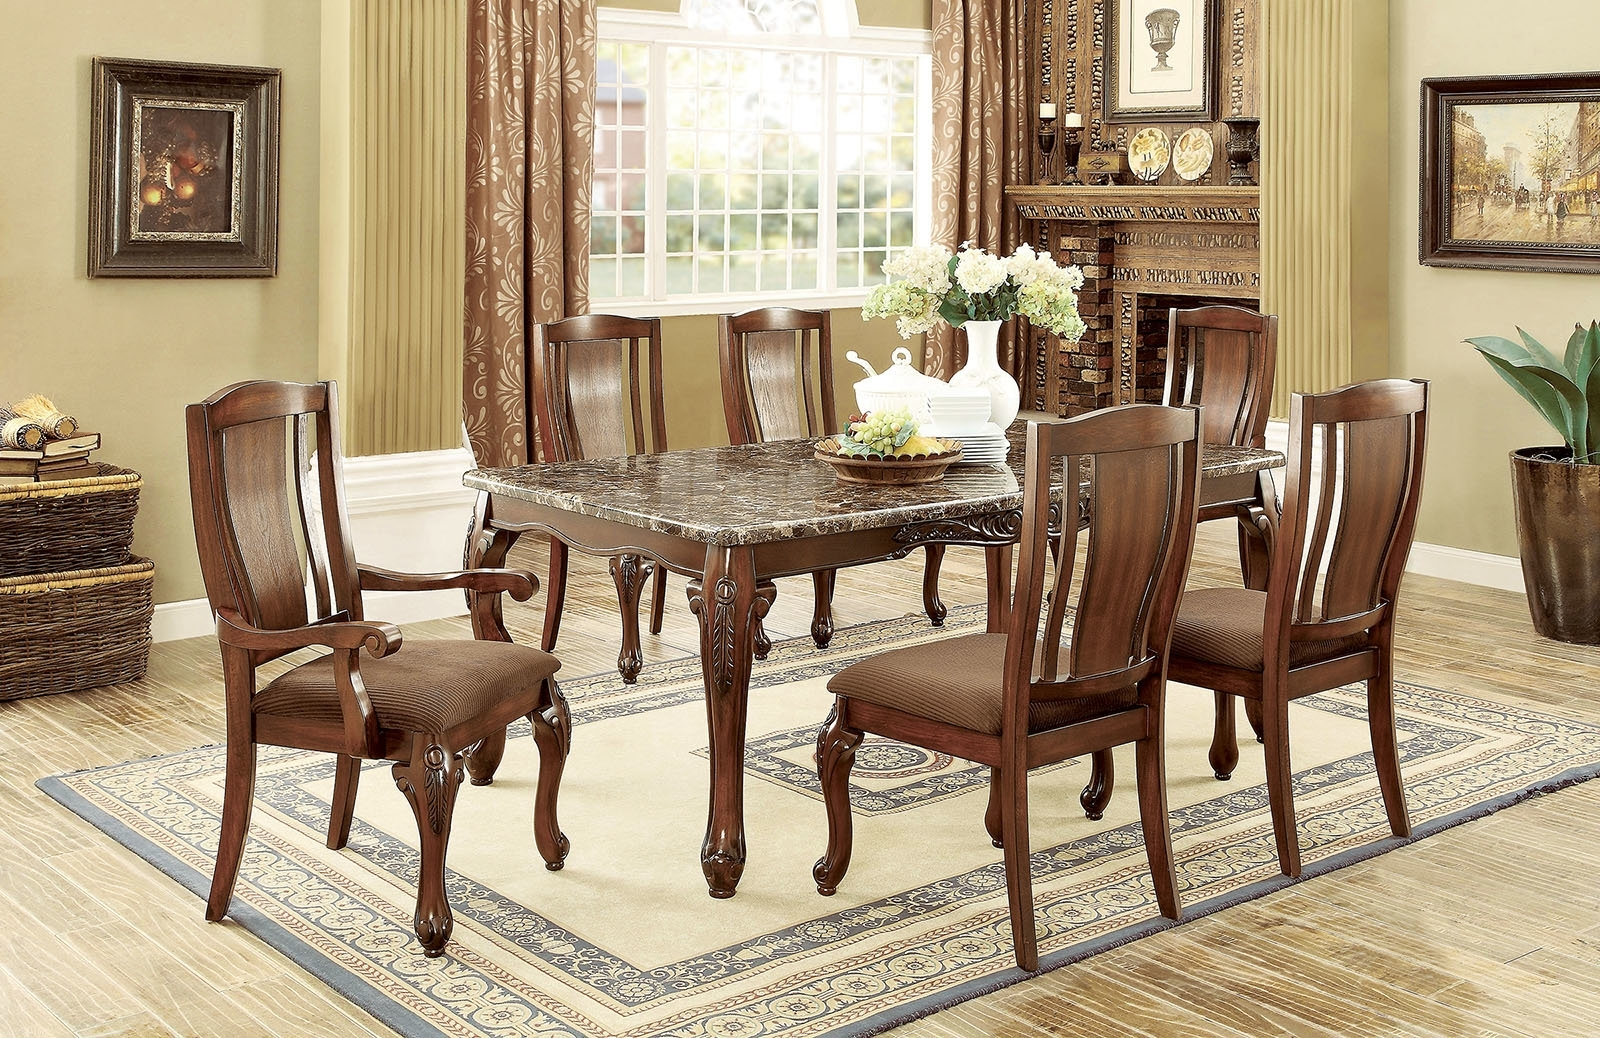 Wayfair Regarding Well Known Candice Ii 7 Piece Extension Rectangle Dining Sets (View 23 of 25)